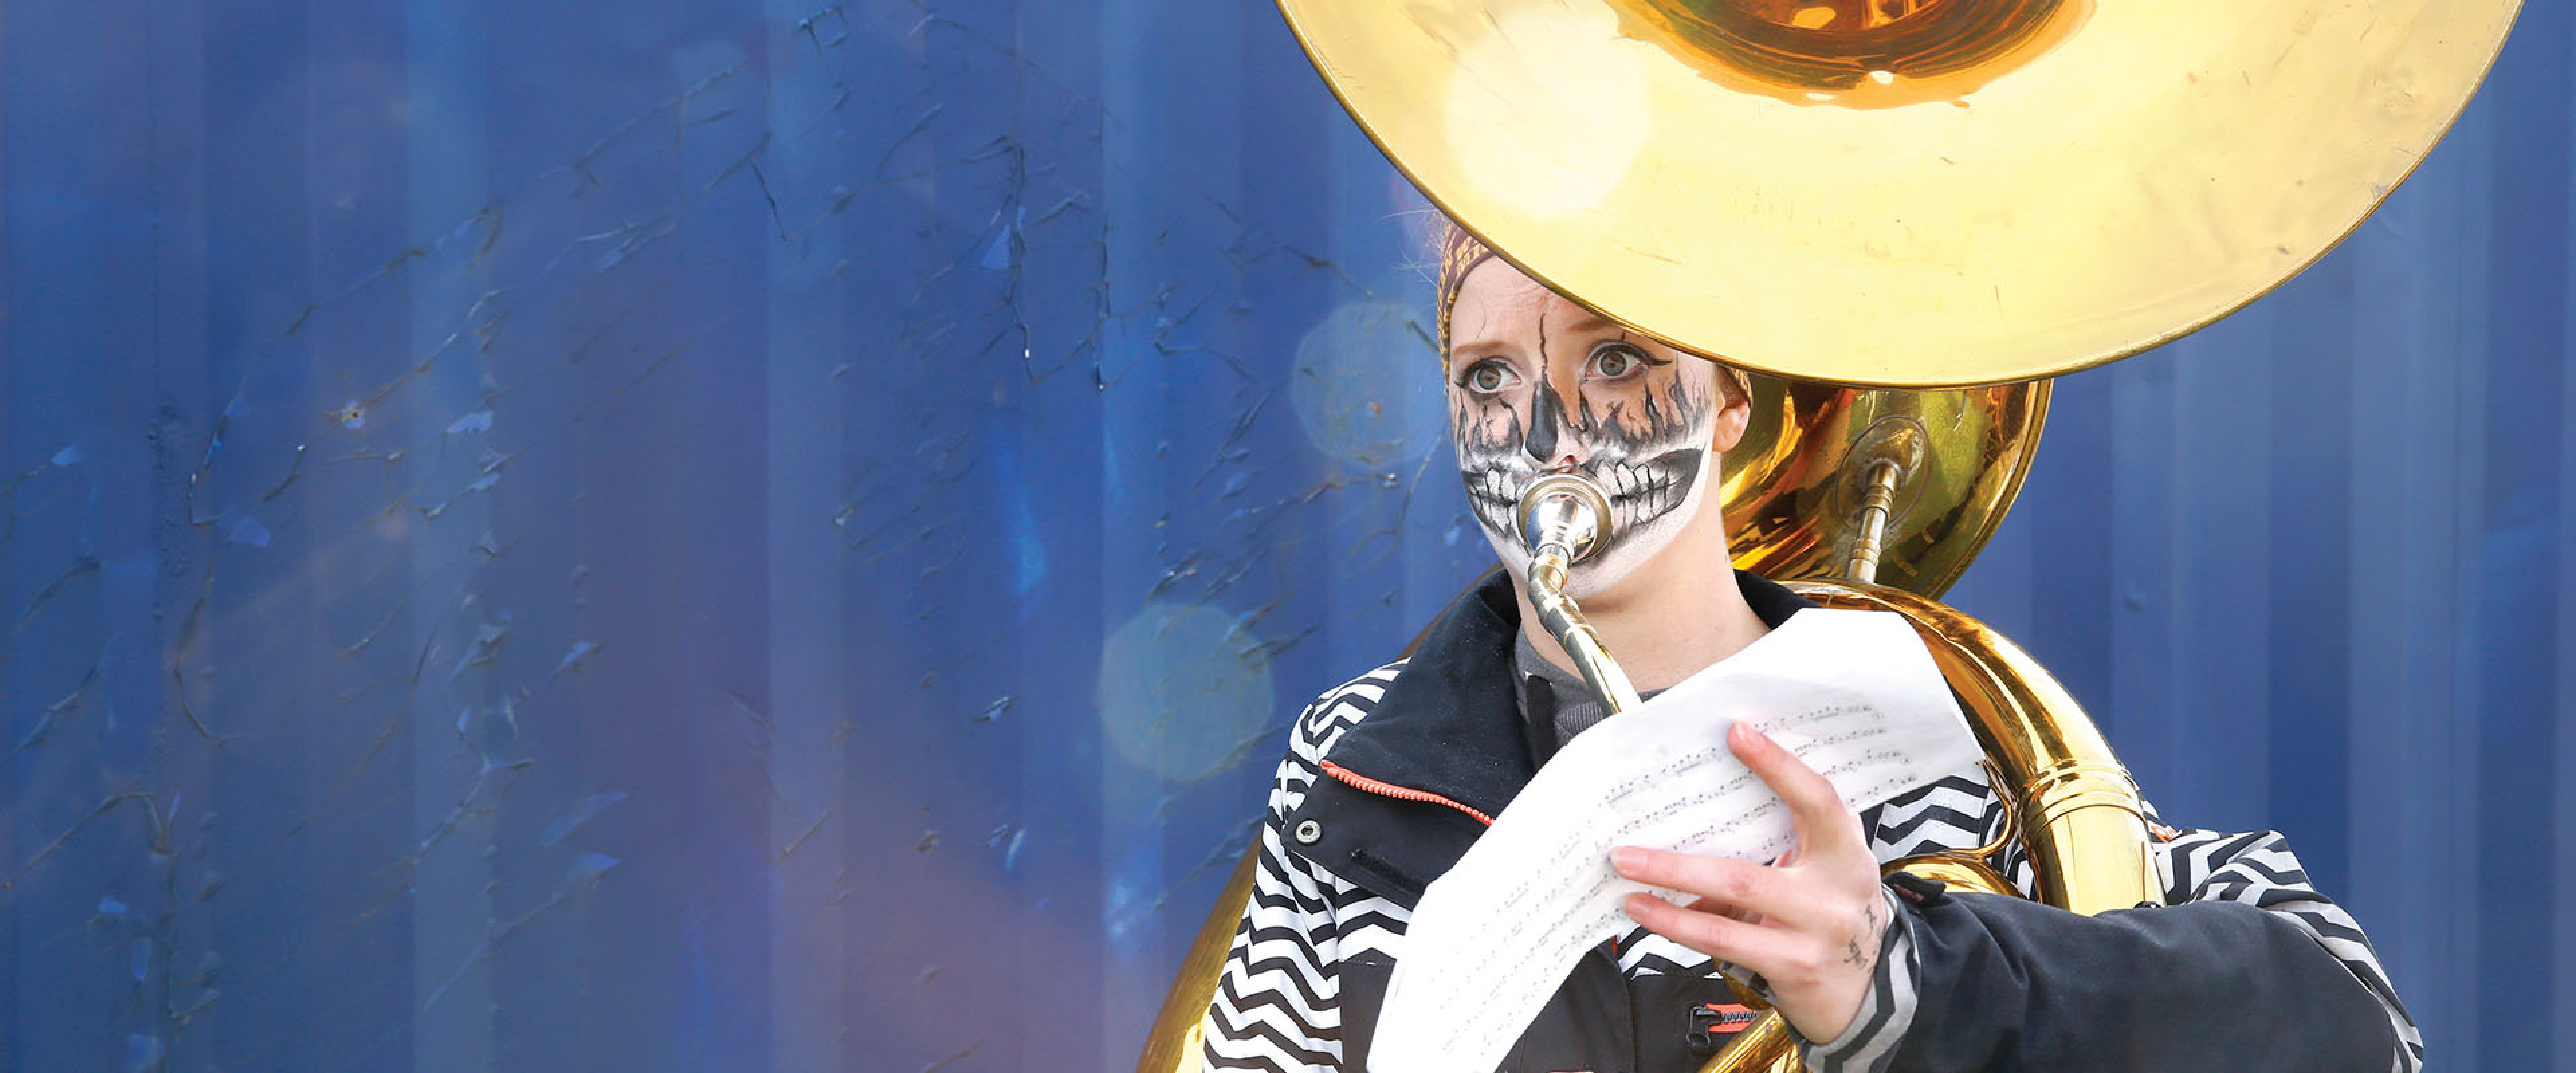 A WMU student with her face painted plays the tuba